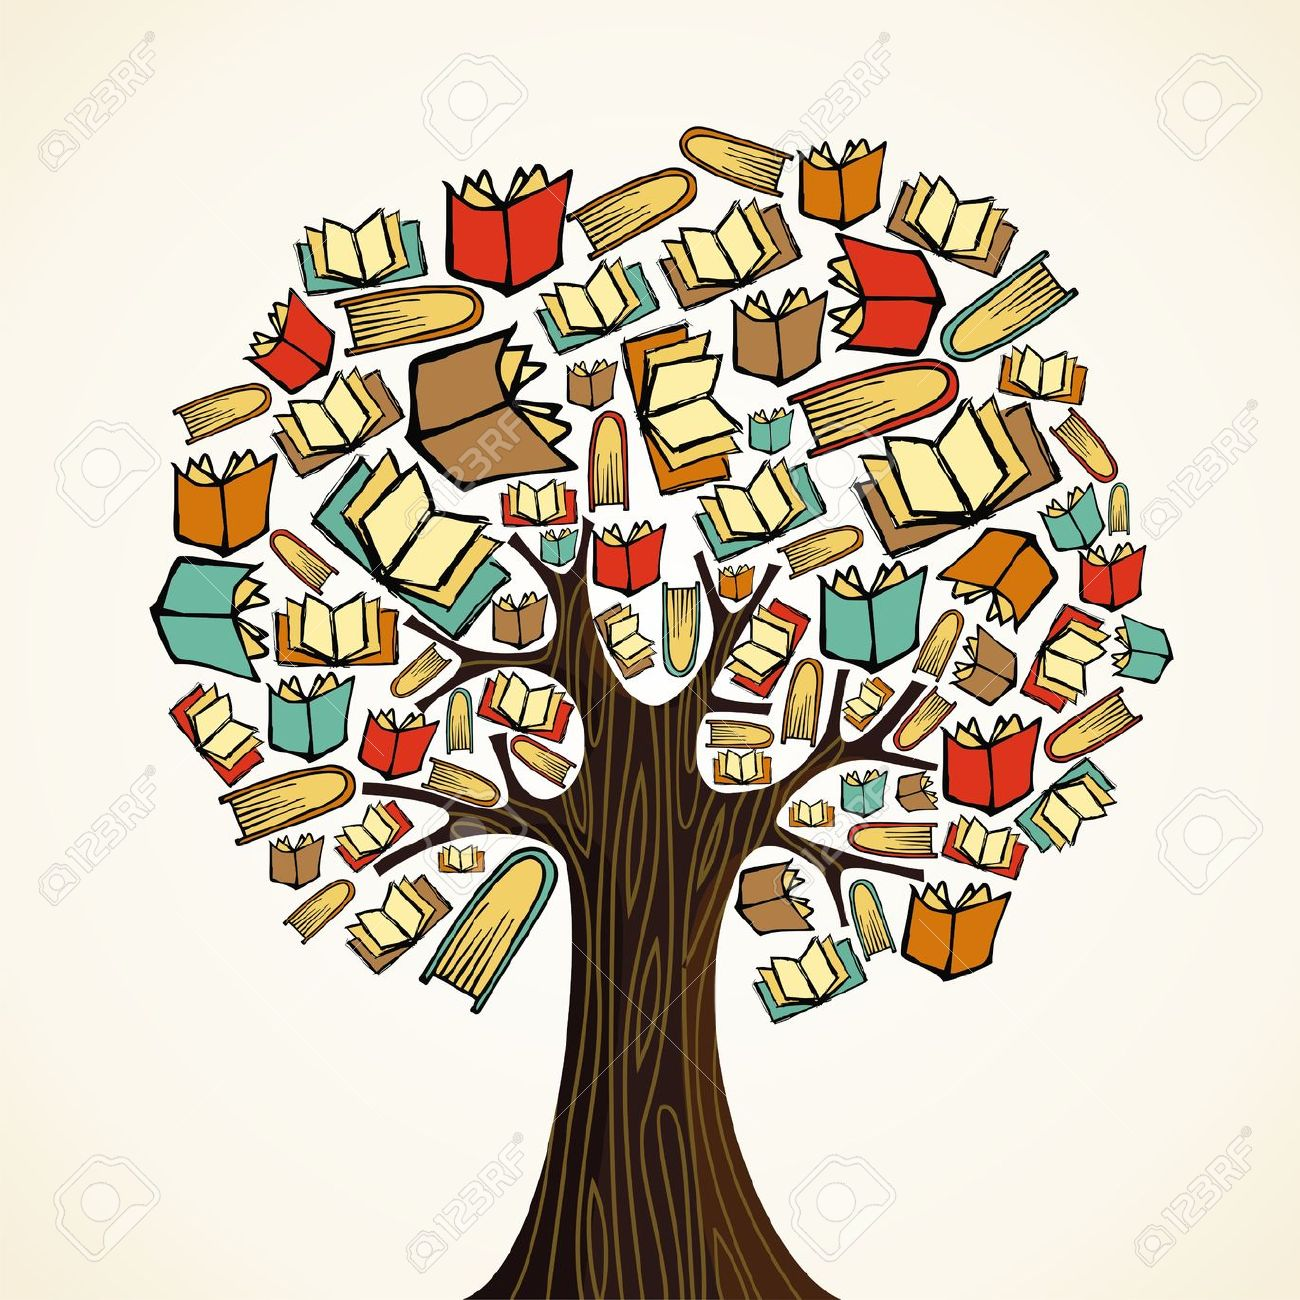 Tree of . Knowledge clipart